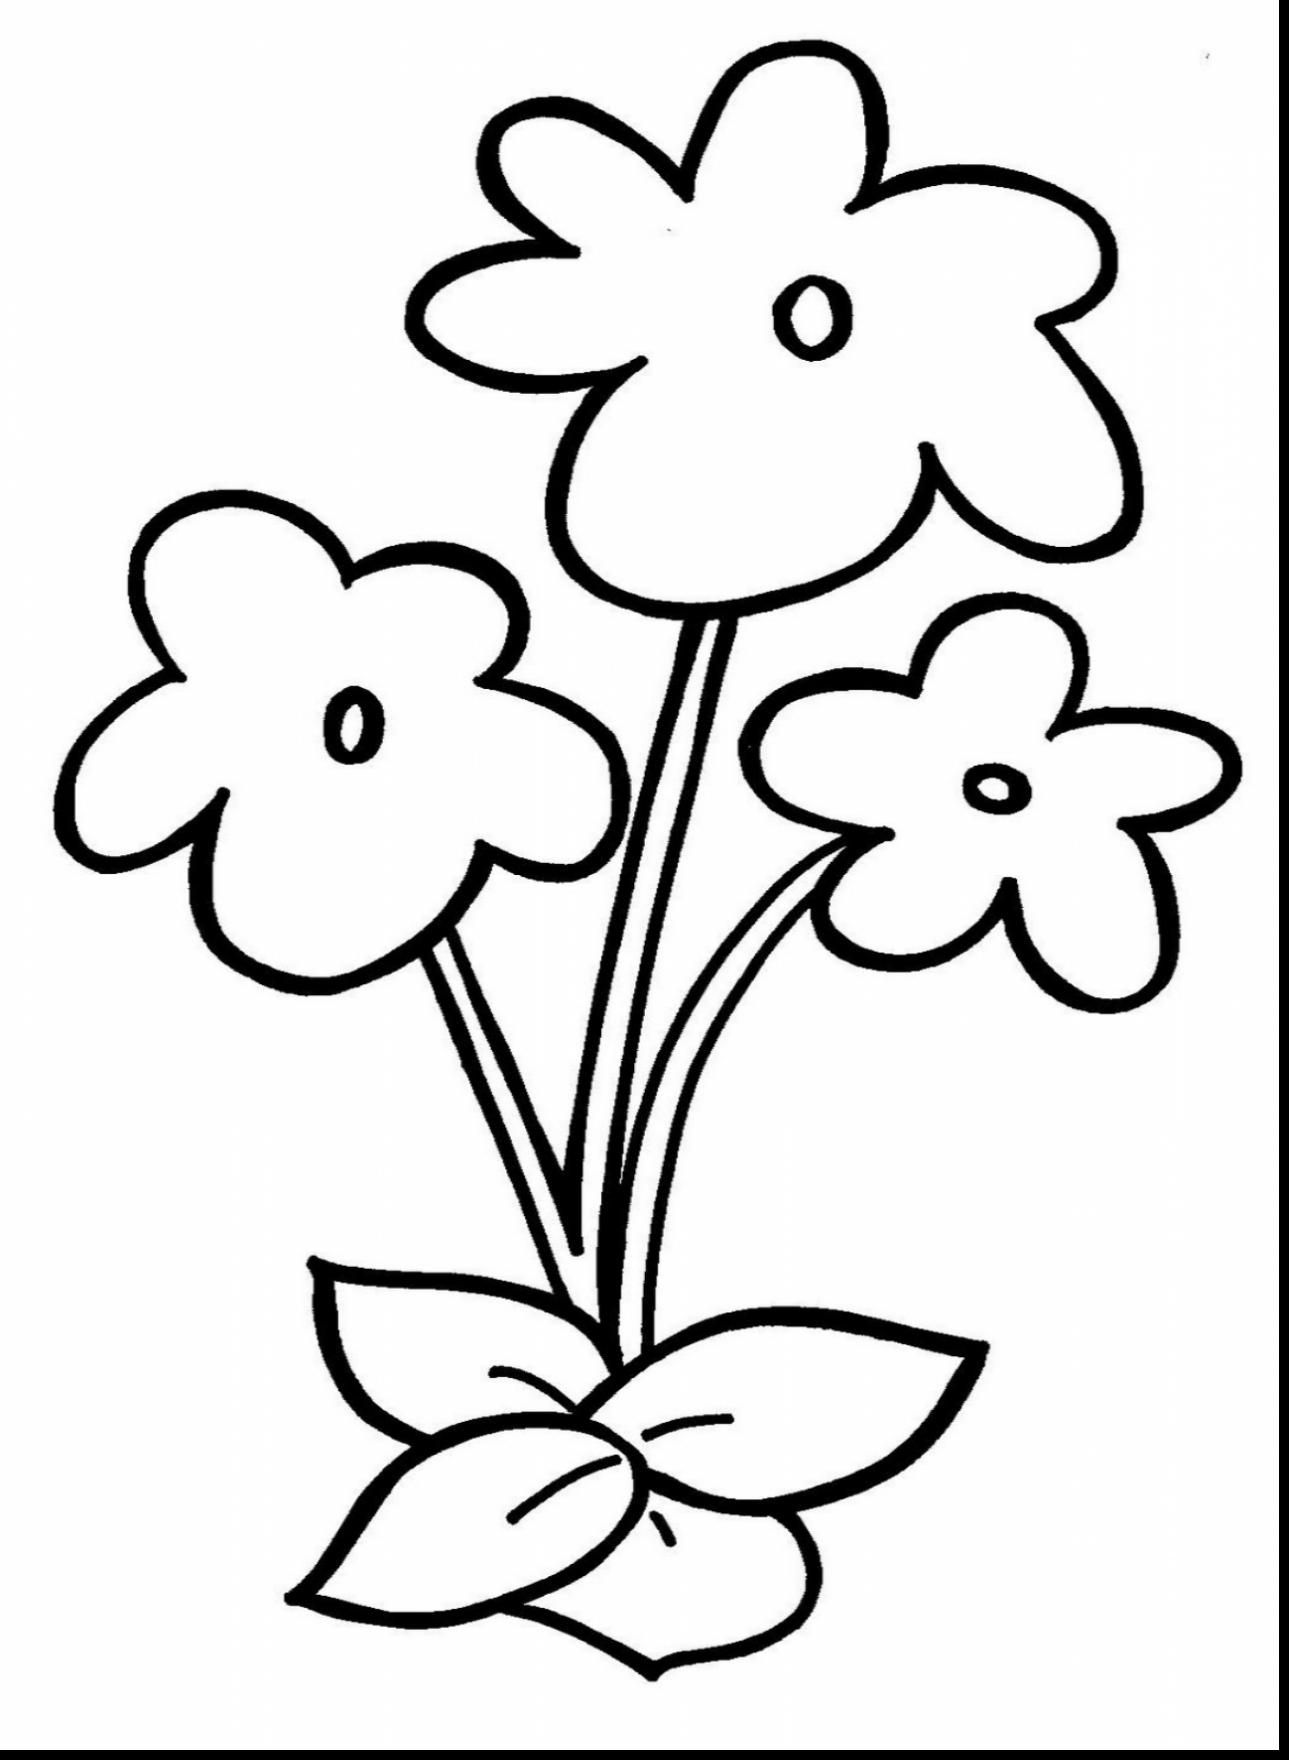 flower coloring pages to print poppy flowers coloring pages download and print for free to print flower pages coloring